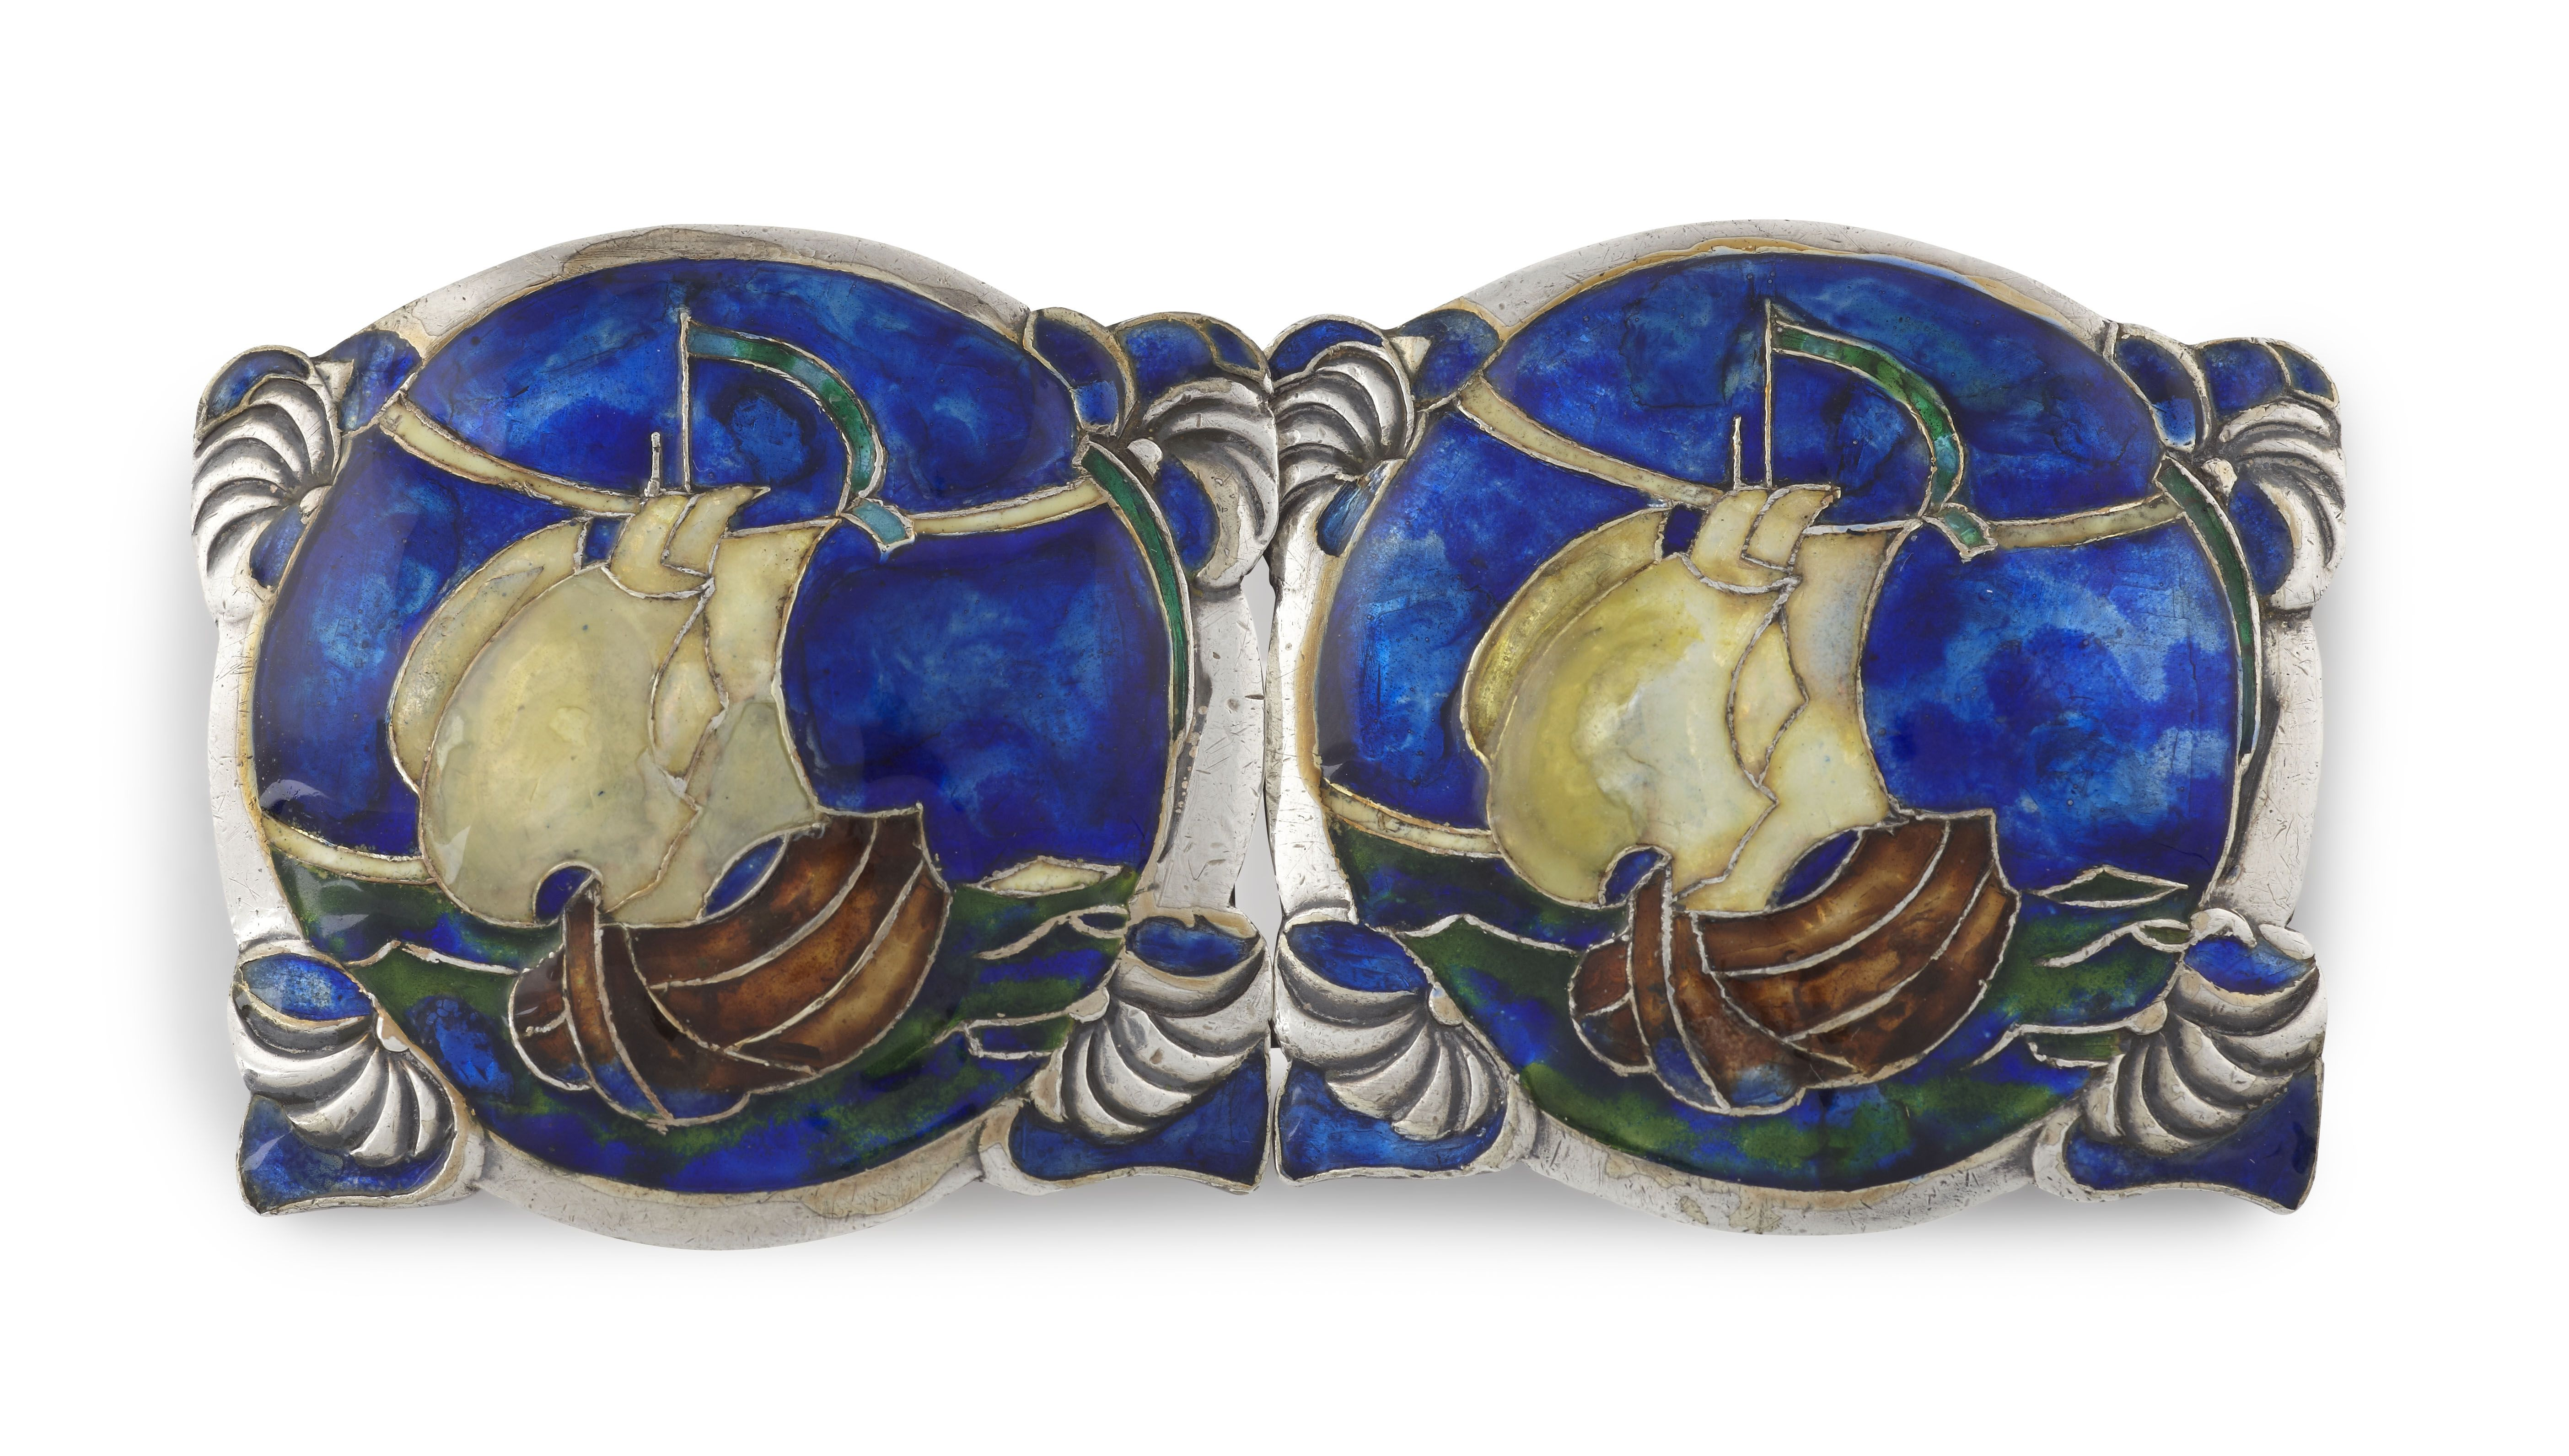 Lot 111  JESSIE MARION KING (1875-1949) FOR LIBERTY & CO., LONDON SILVER, ENAMEL AND MOTHER OF PEARL BUCKLE, DATED 1910 9.5cm across  Estimate: £1000  - 1500